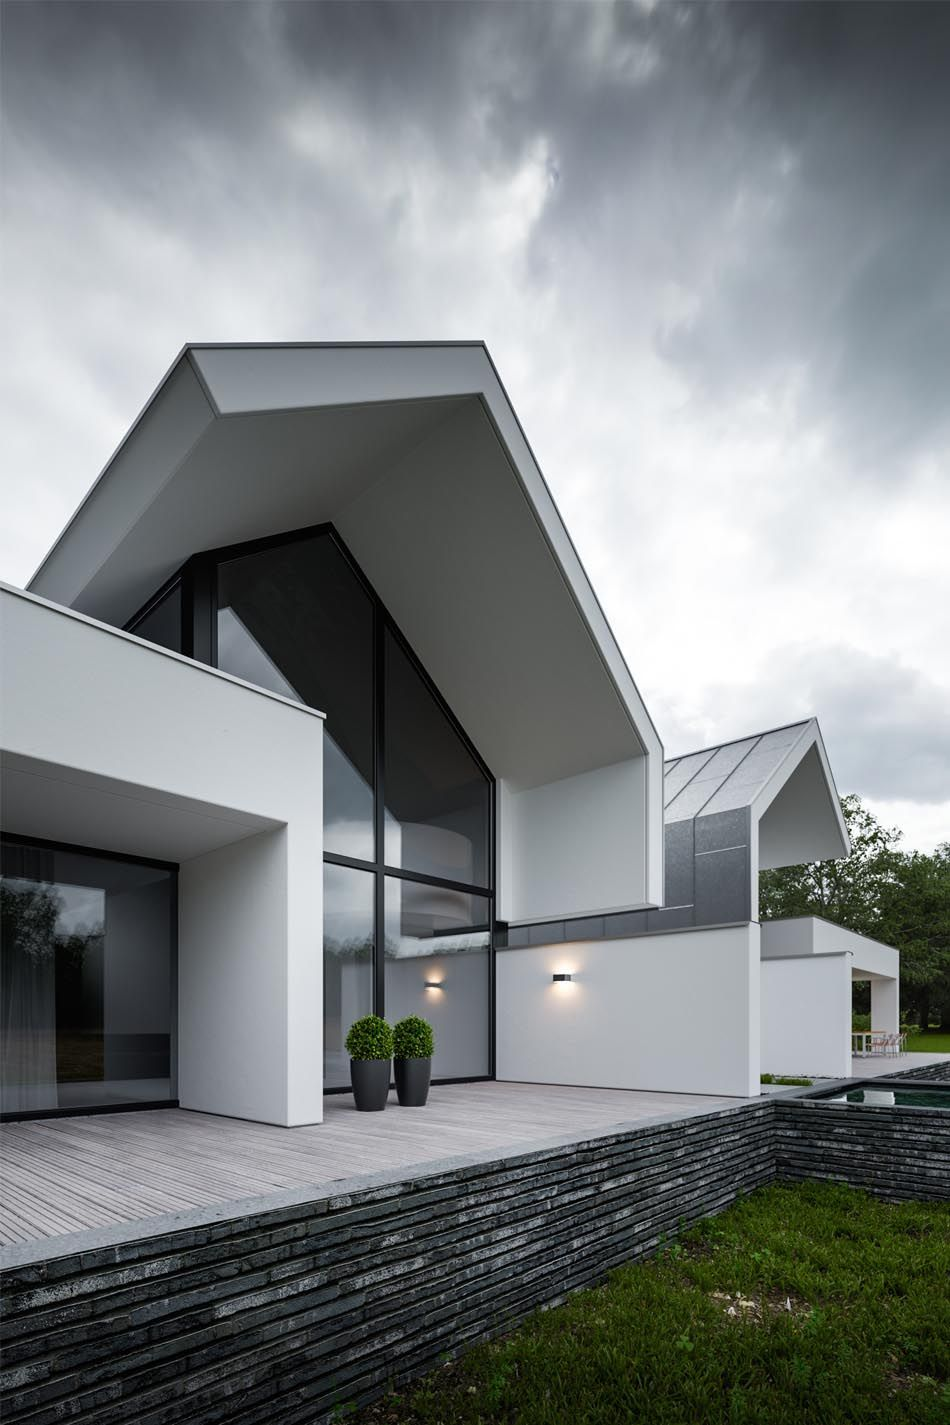 Modern home contemporary design httpbocadoloboen project zwolle creates an impressive and moody overcast atmosphere with extensive use of forest pack in combination with some ccuart Images